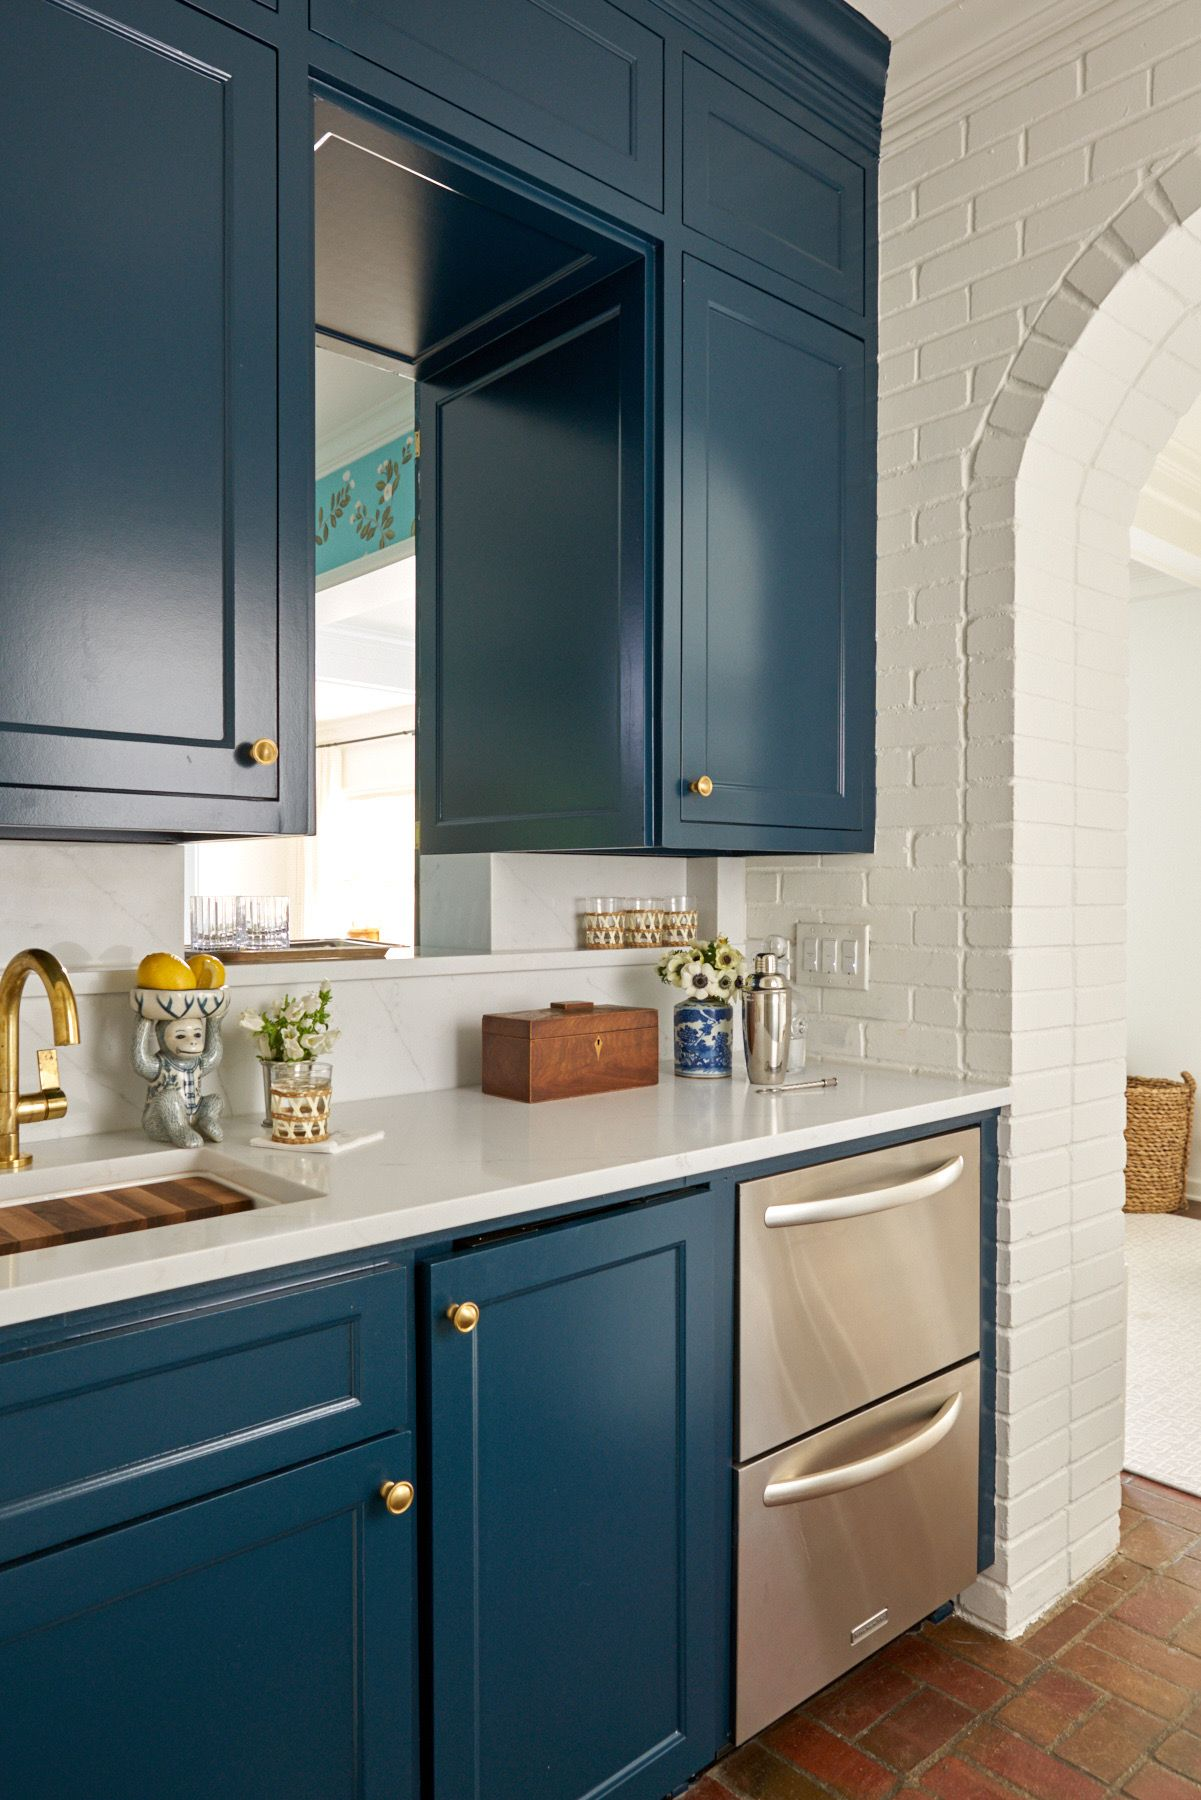 Shenandoah Amy Berry Design Teal Kitchen Cabinets Teal Cabinets White Marble Countertops